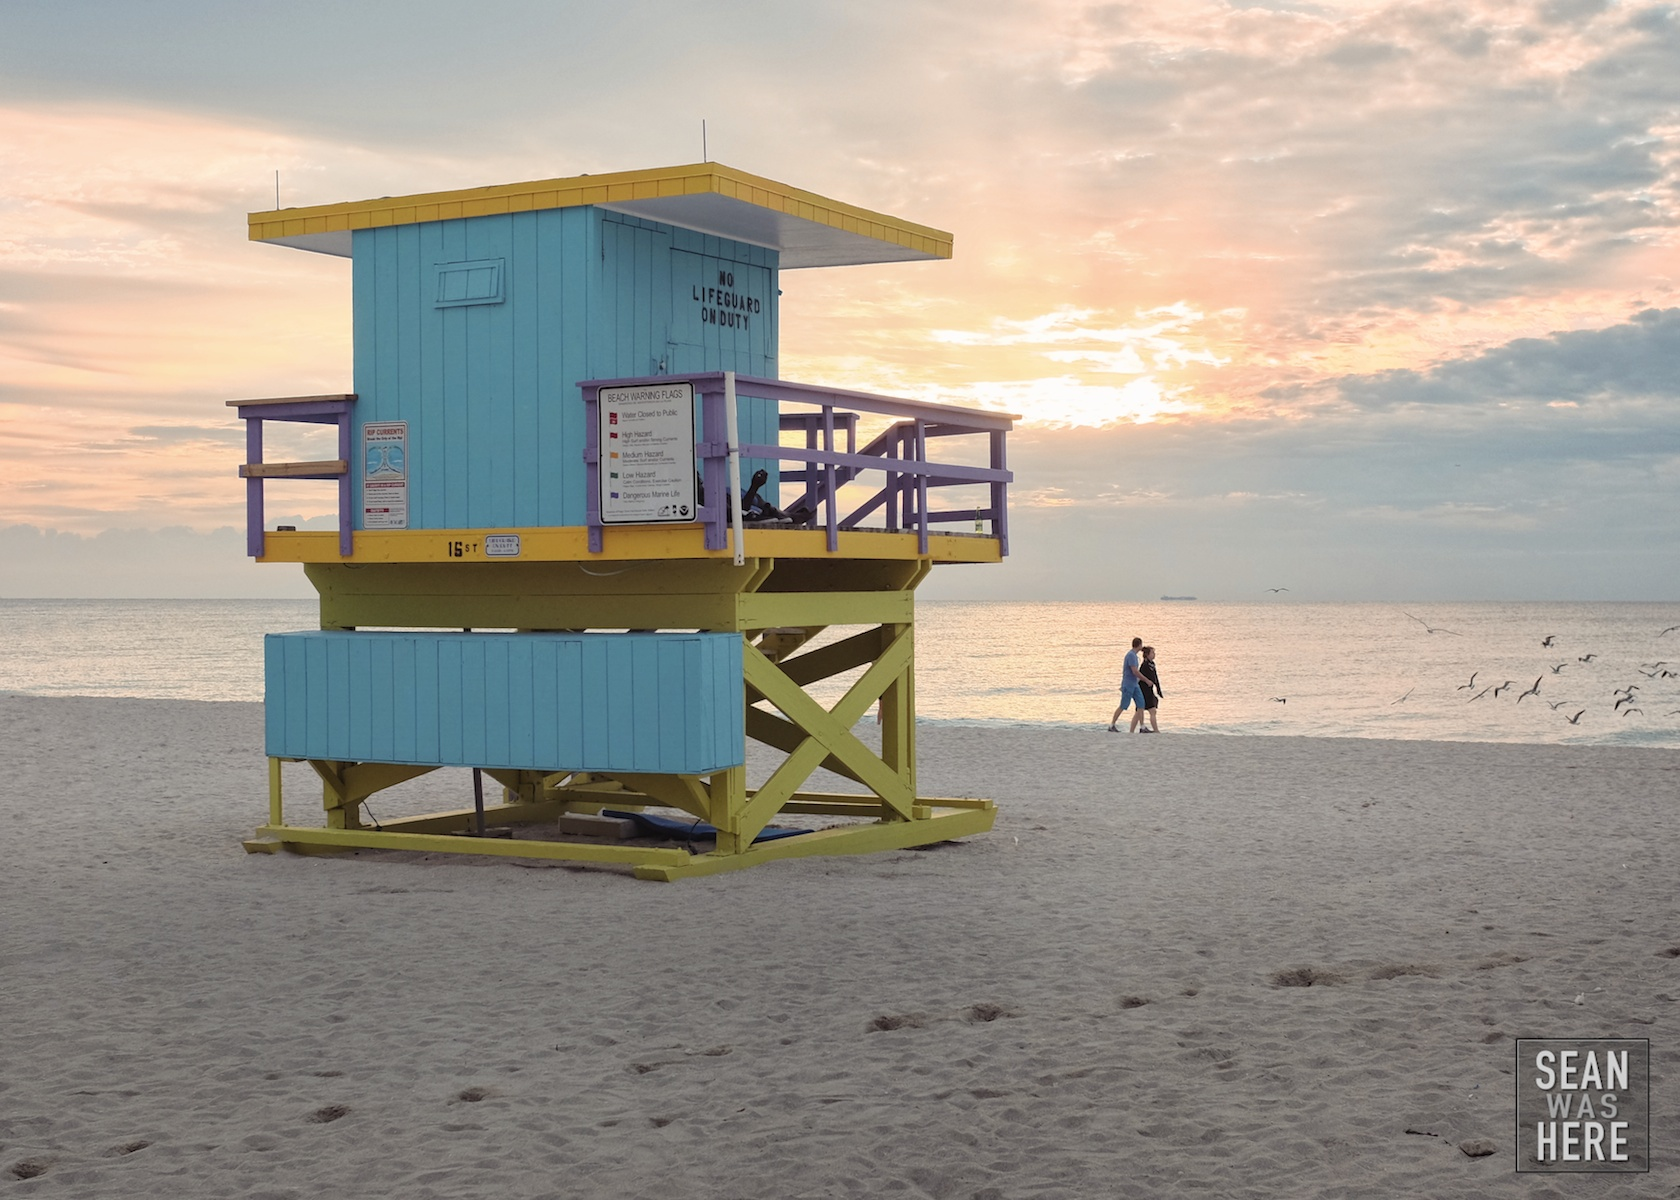 Miami Beach 15th Street Lifeguard Stand